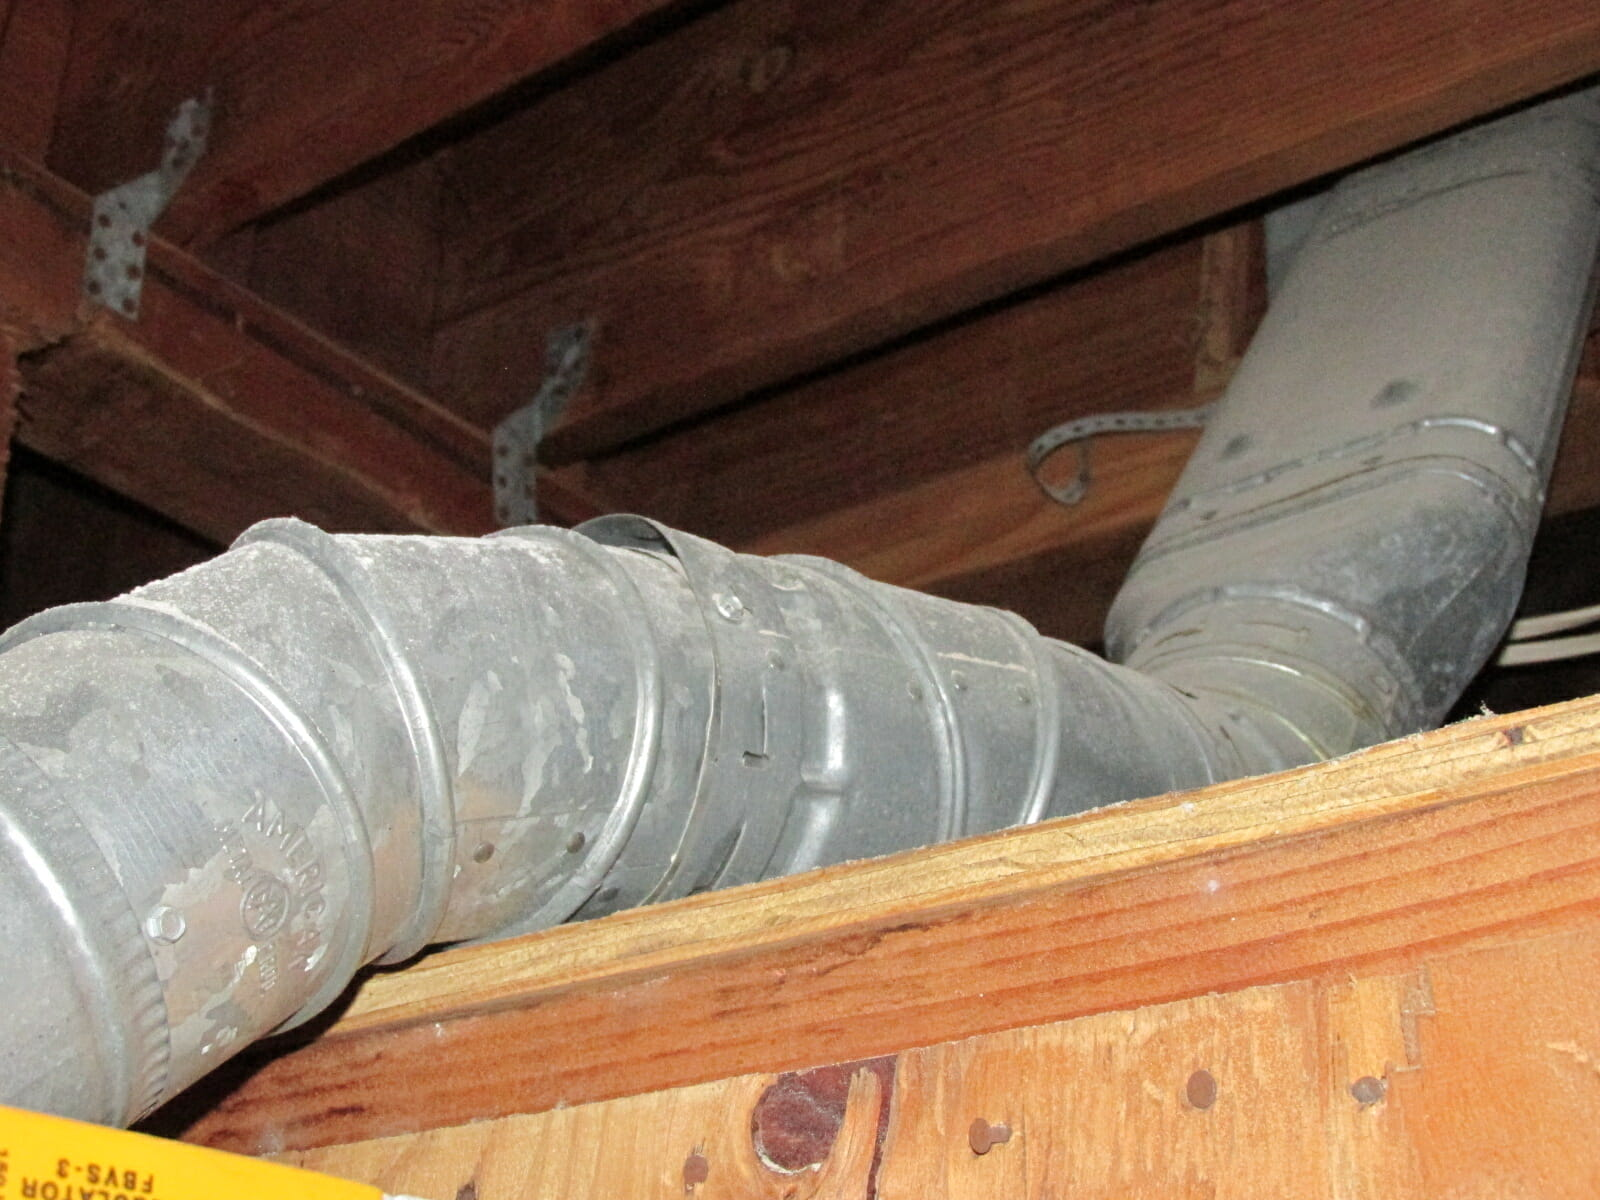 Water heater vent against wood